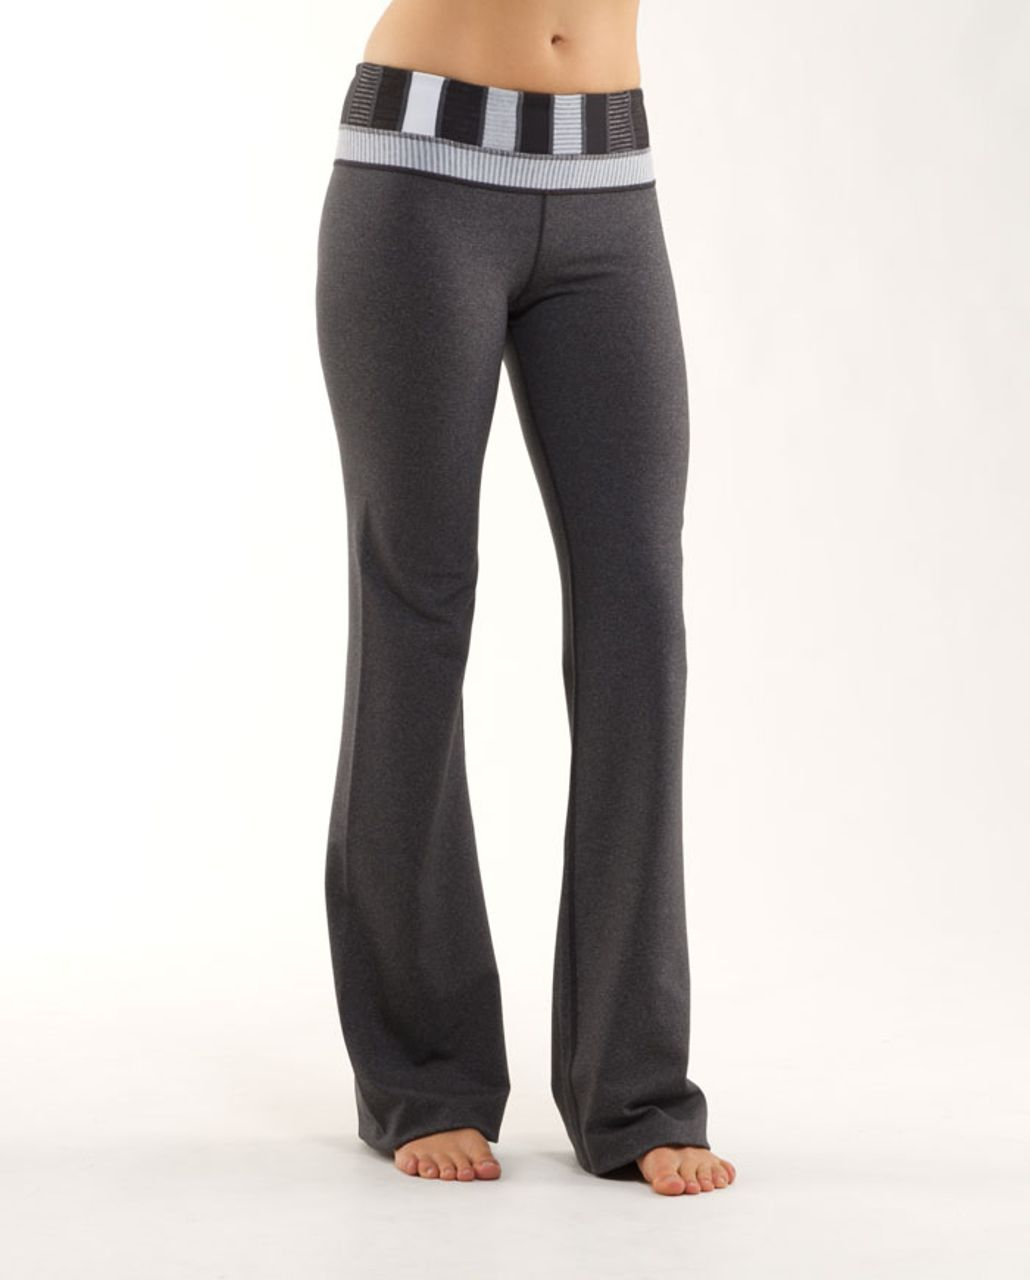 Lululemon Groove Pant (Tall) - Heathered Deep Coal /  Quilting Winter 4 /  White Heathered Blurred Grey Mini Check